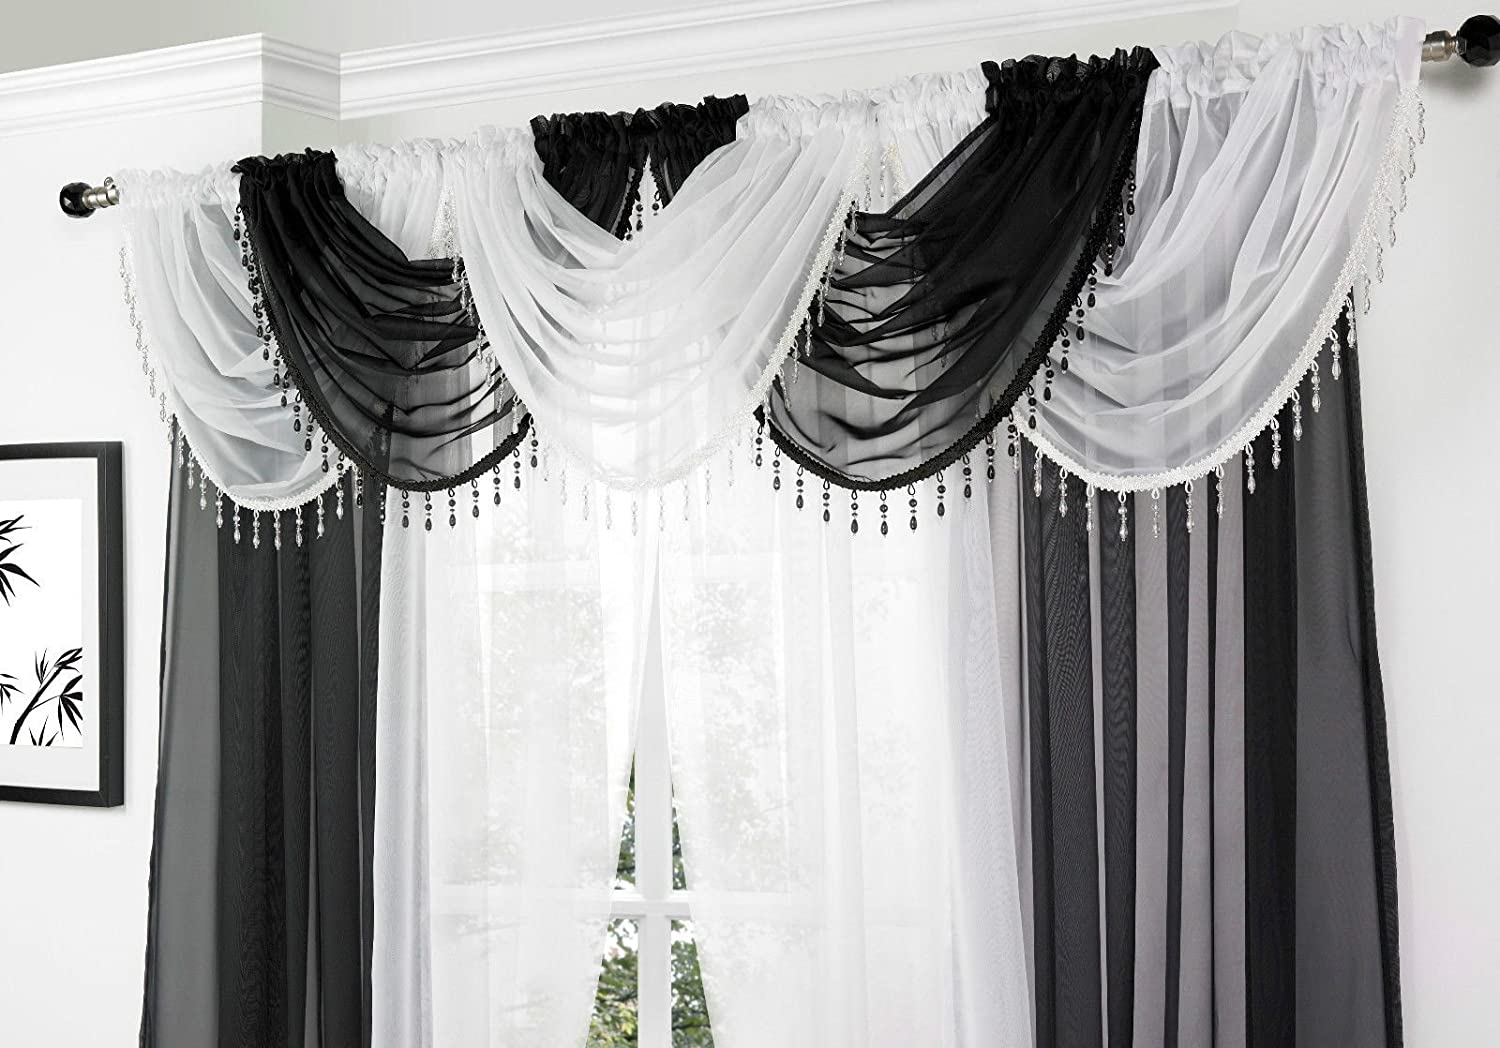 White Voile Curtain Swag With Crystal Beaded Trim By Supplied Maple Textiles Amazoncouk Kitchen Home